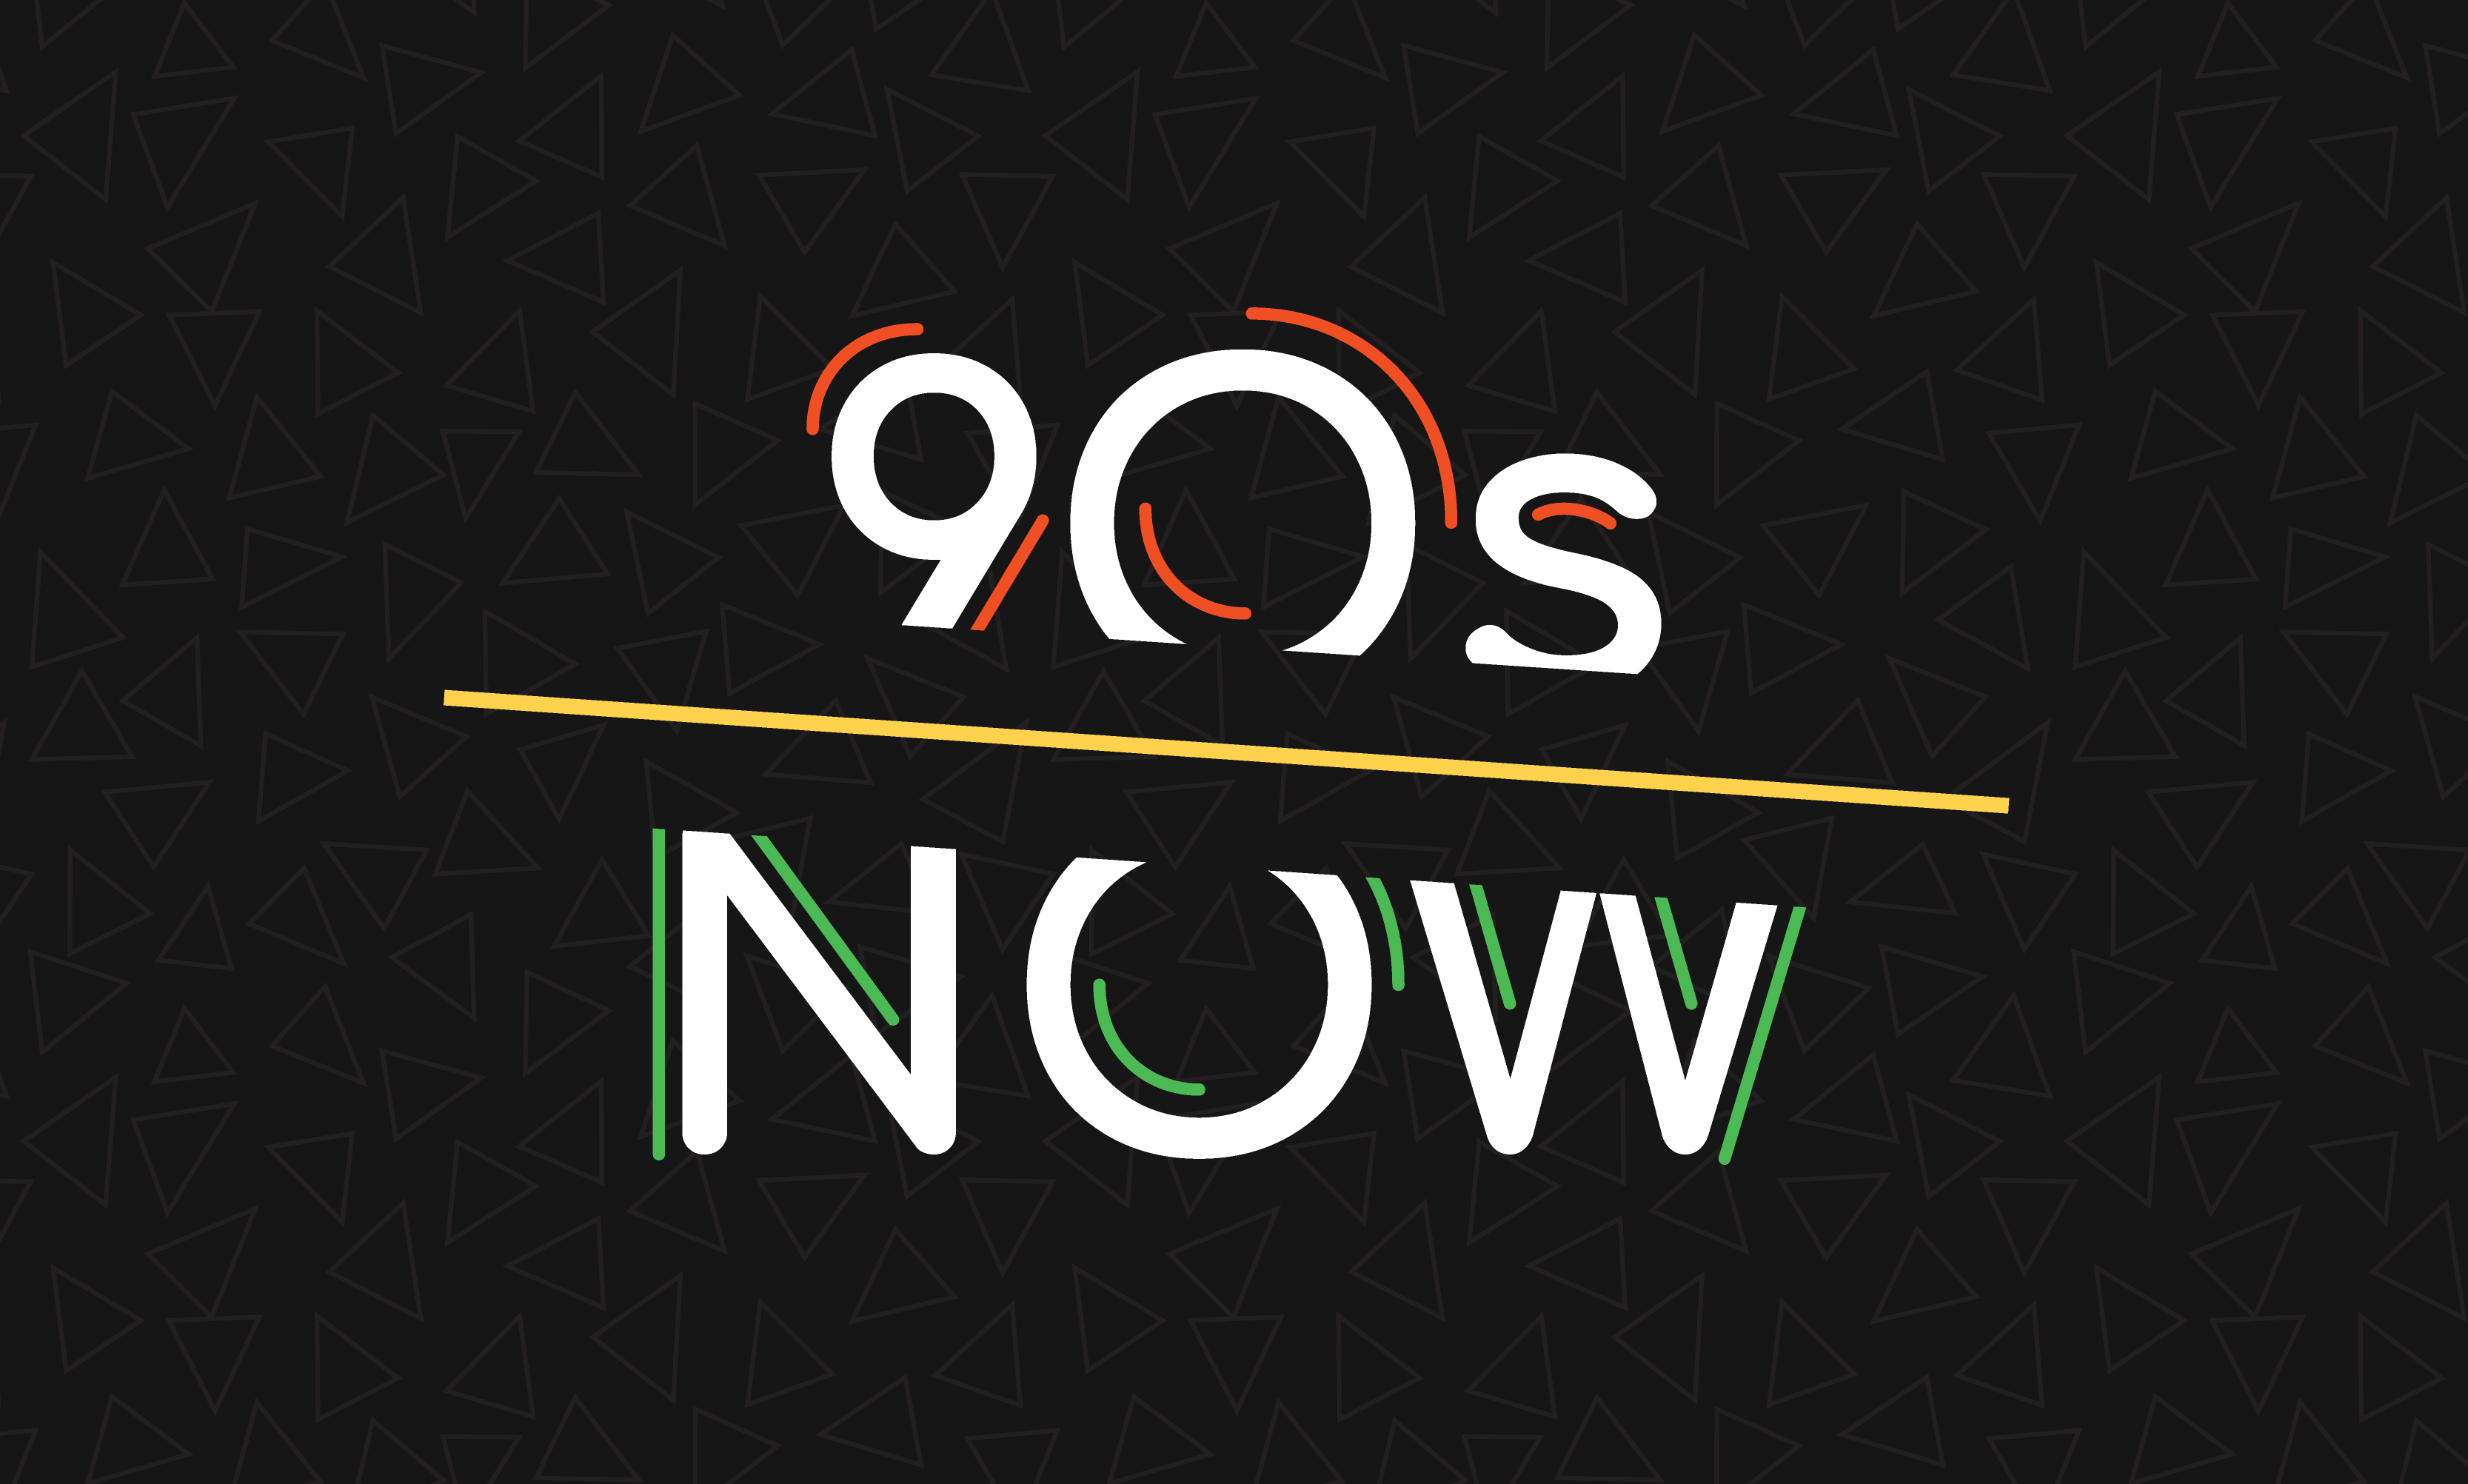 90s Or Now Quiz